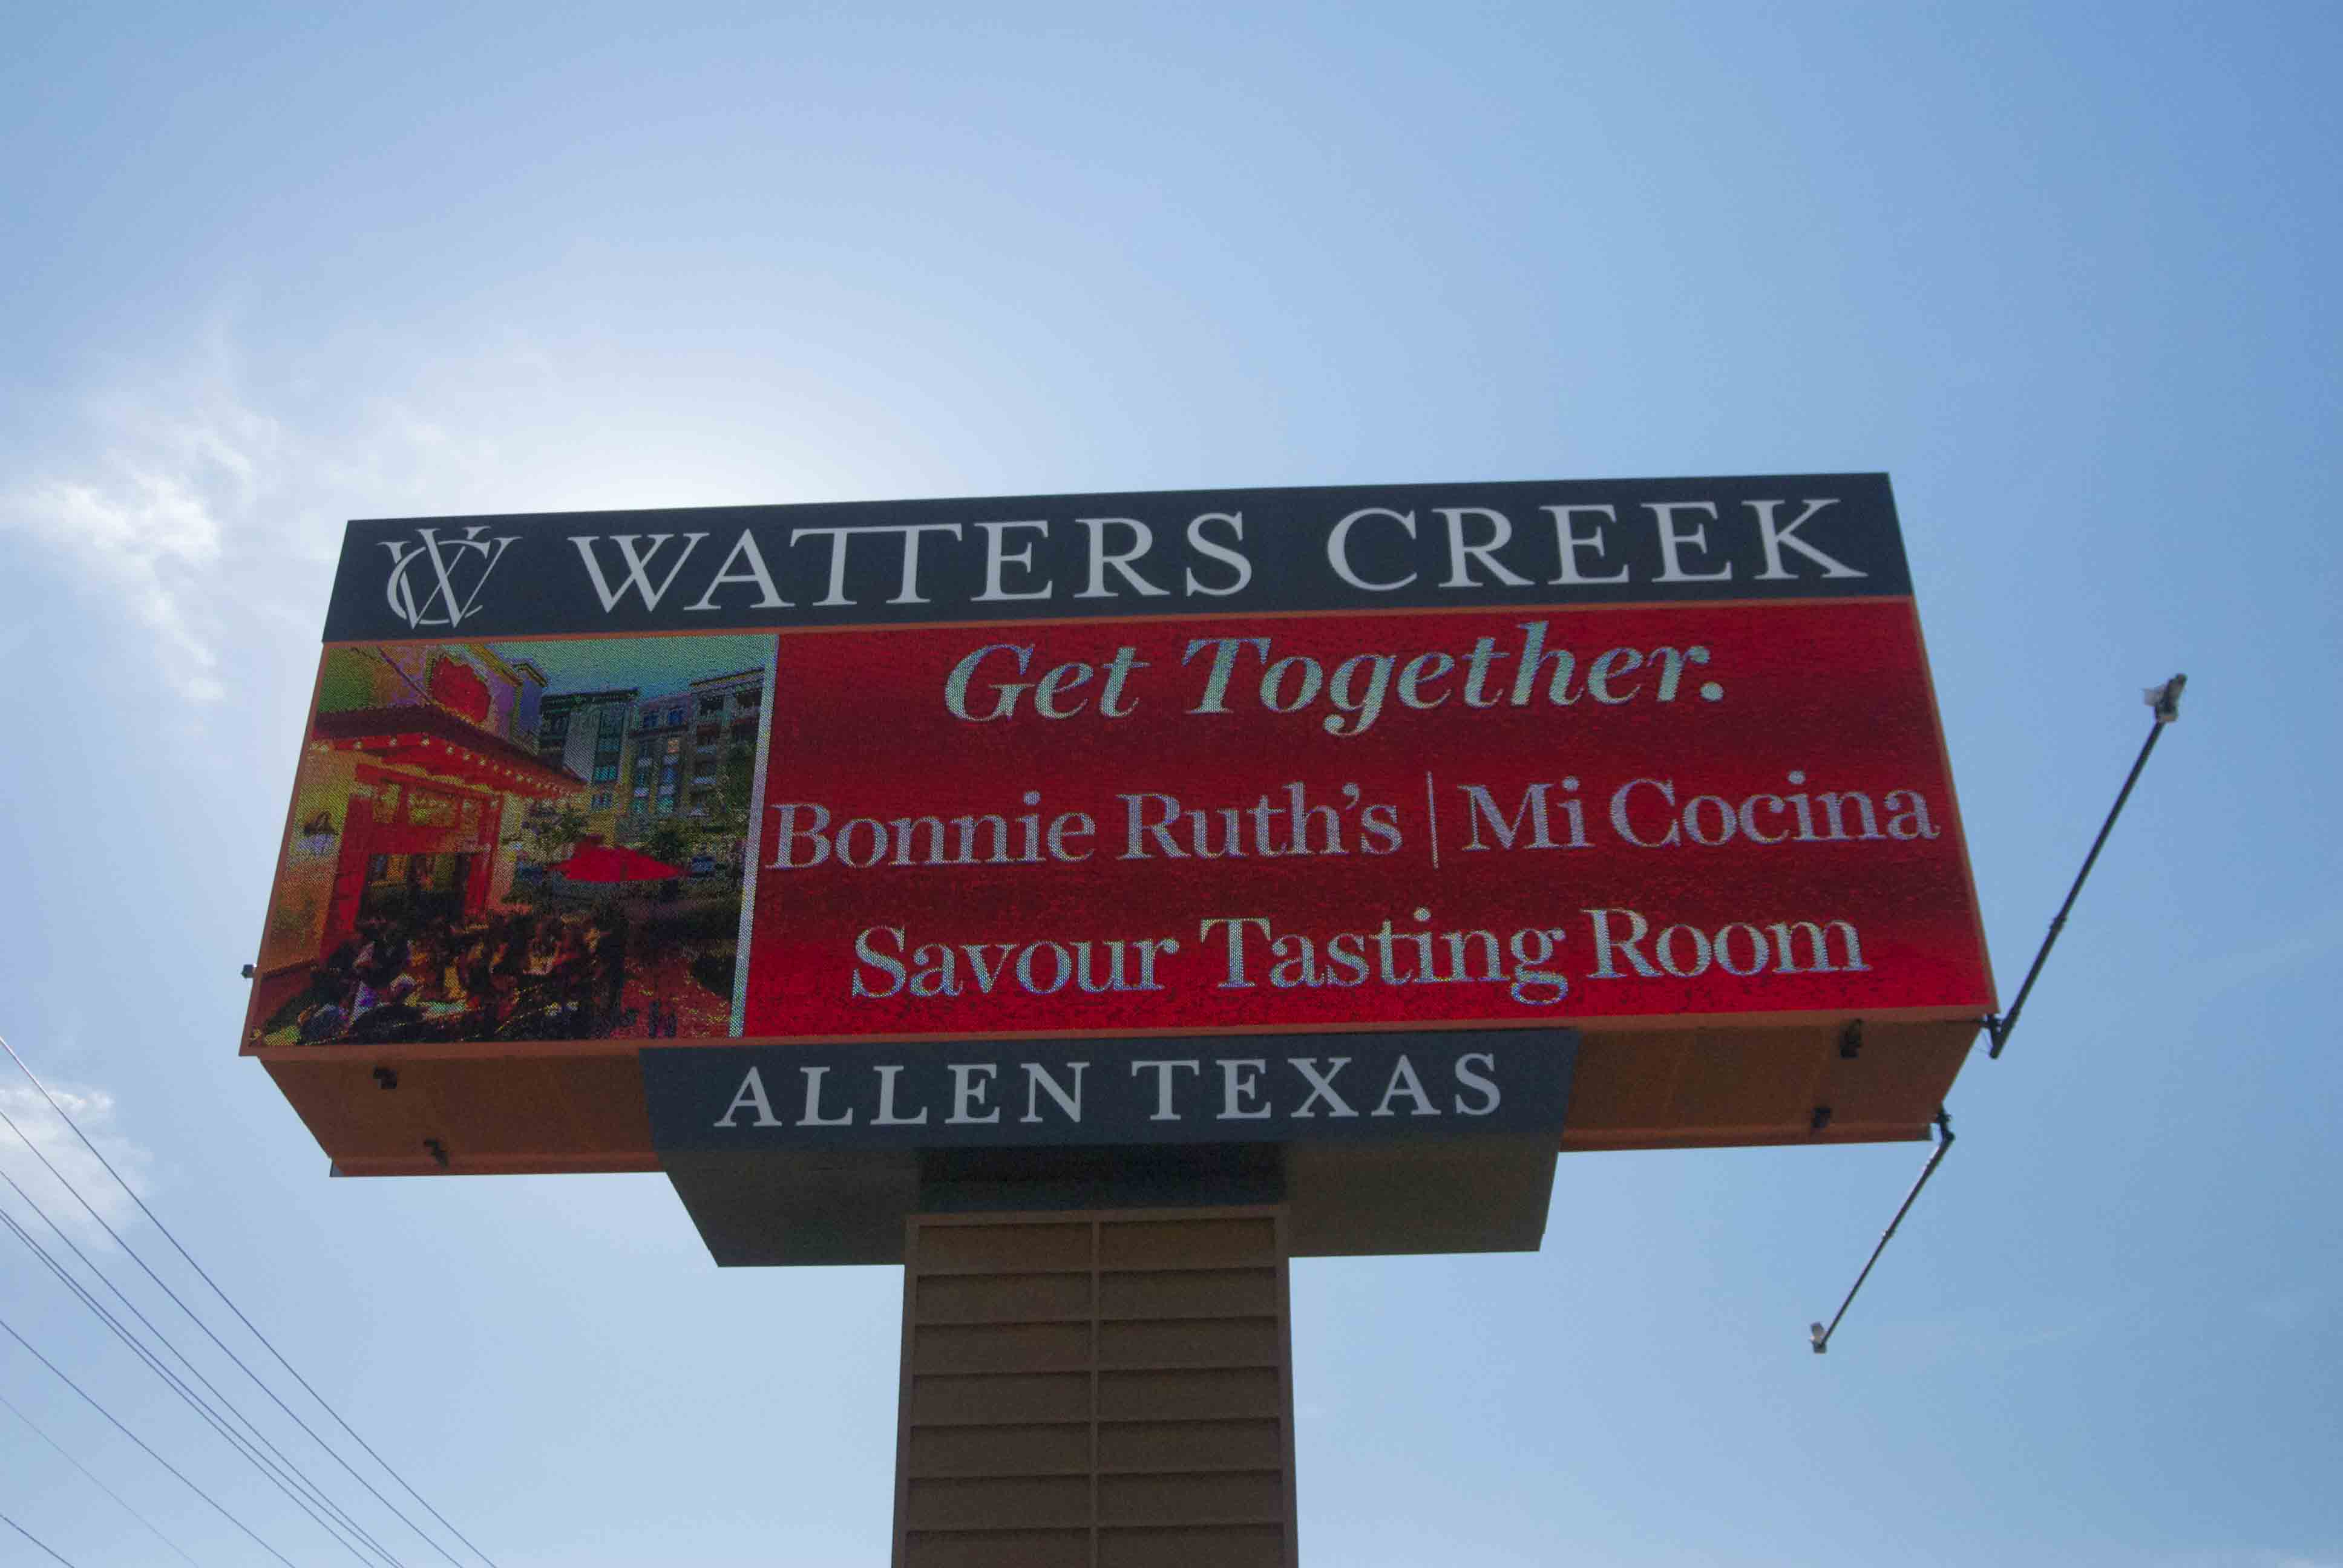 Shopping center Watter's Creek is planning new improvements, including this electronic billboard.